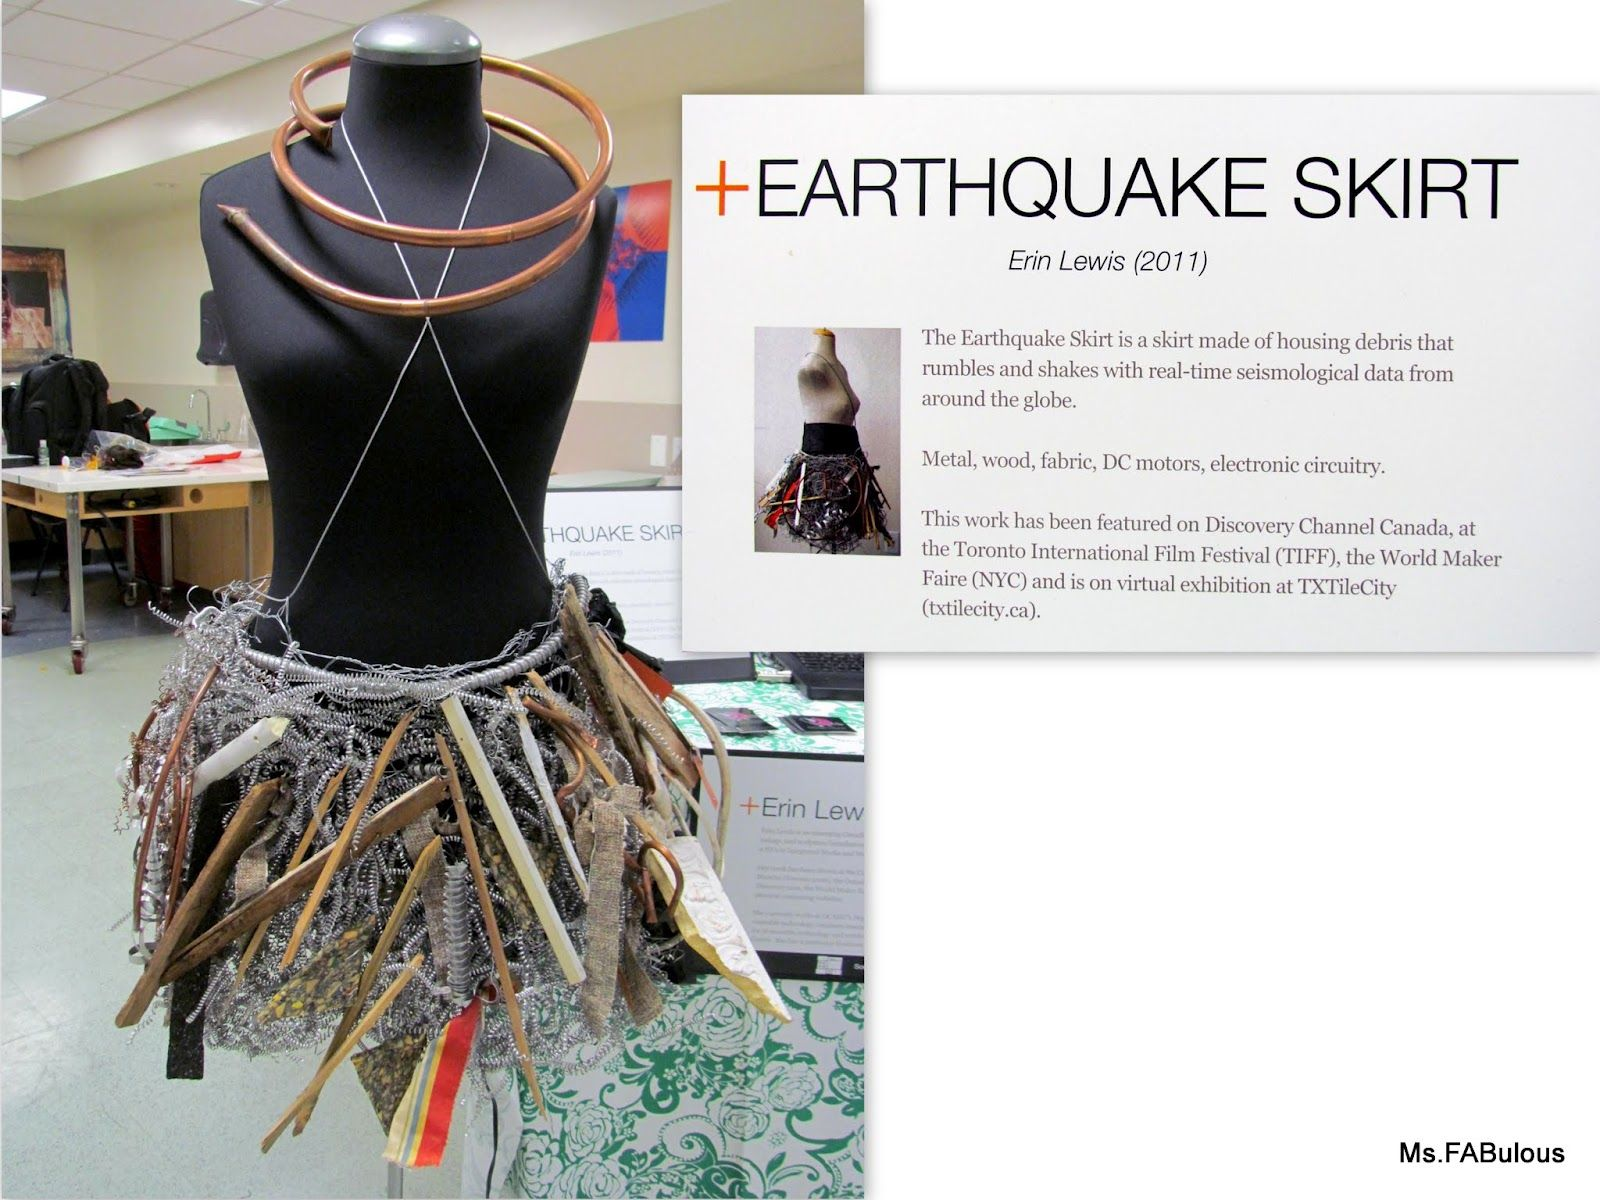 Makerfaire - Wearable Tech Fashion | Tech and Fashion